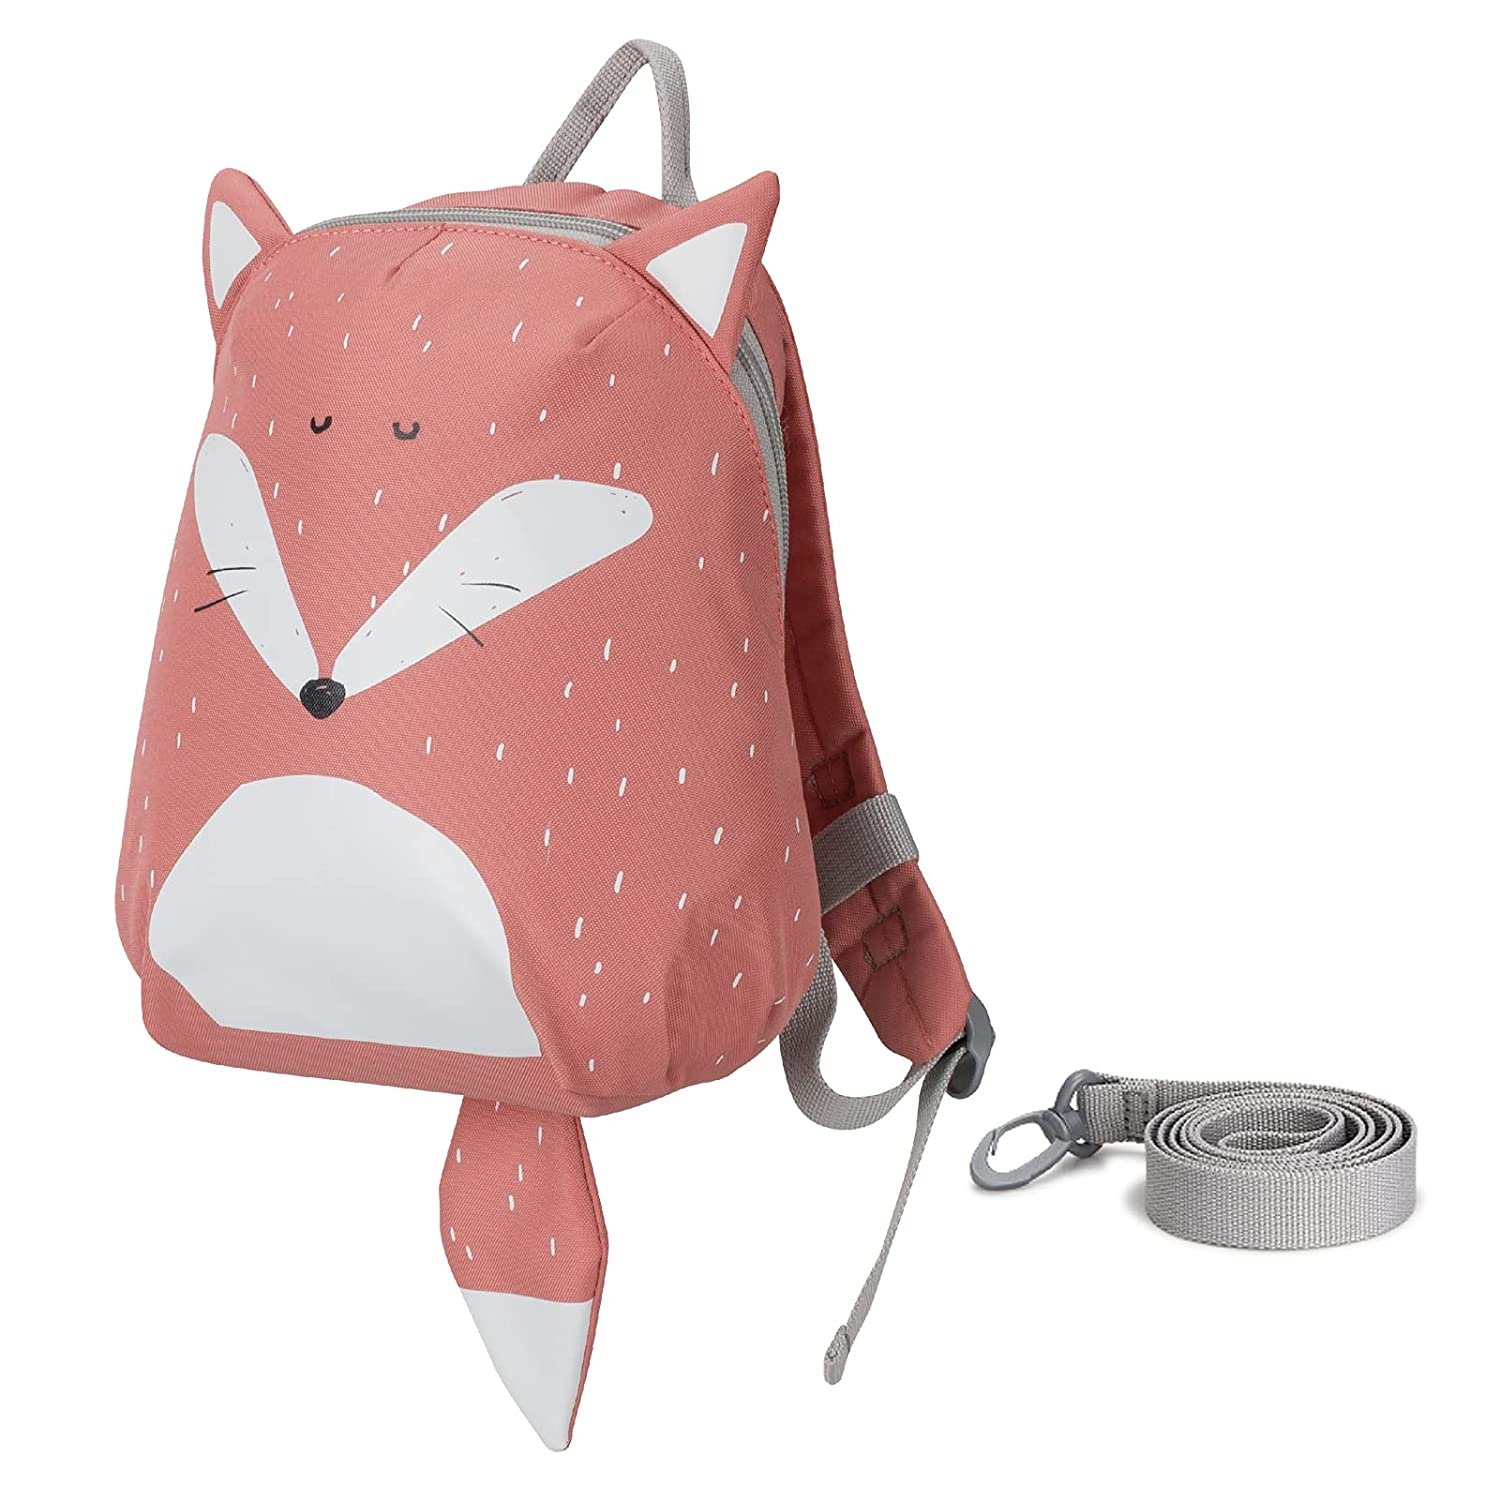 Toddler Backpack with Anti-Lost Leash - Baby Walking Safety Harness(Fox)